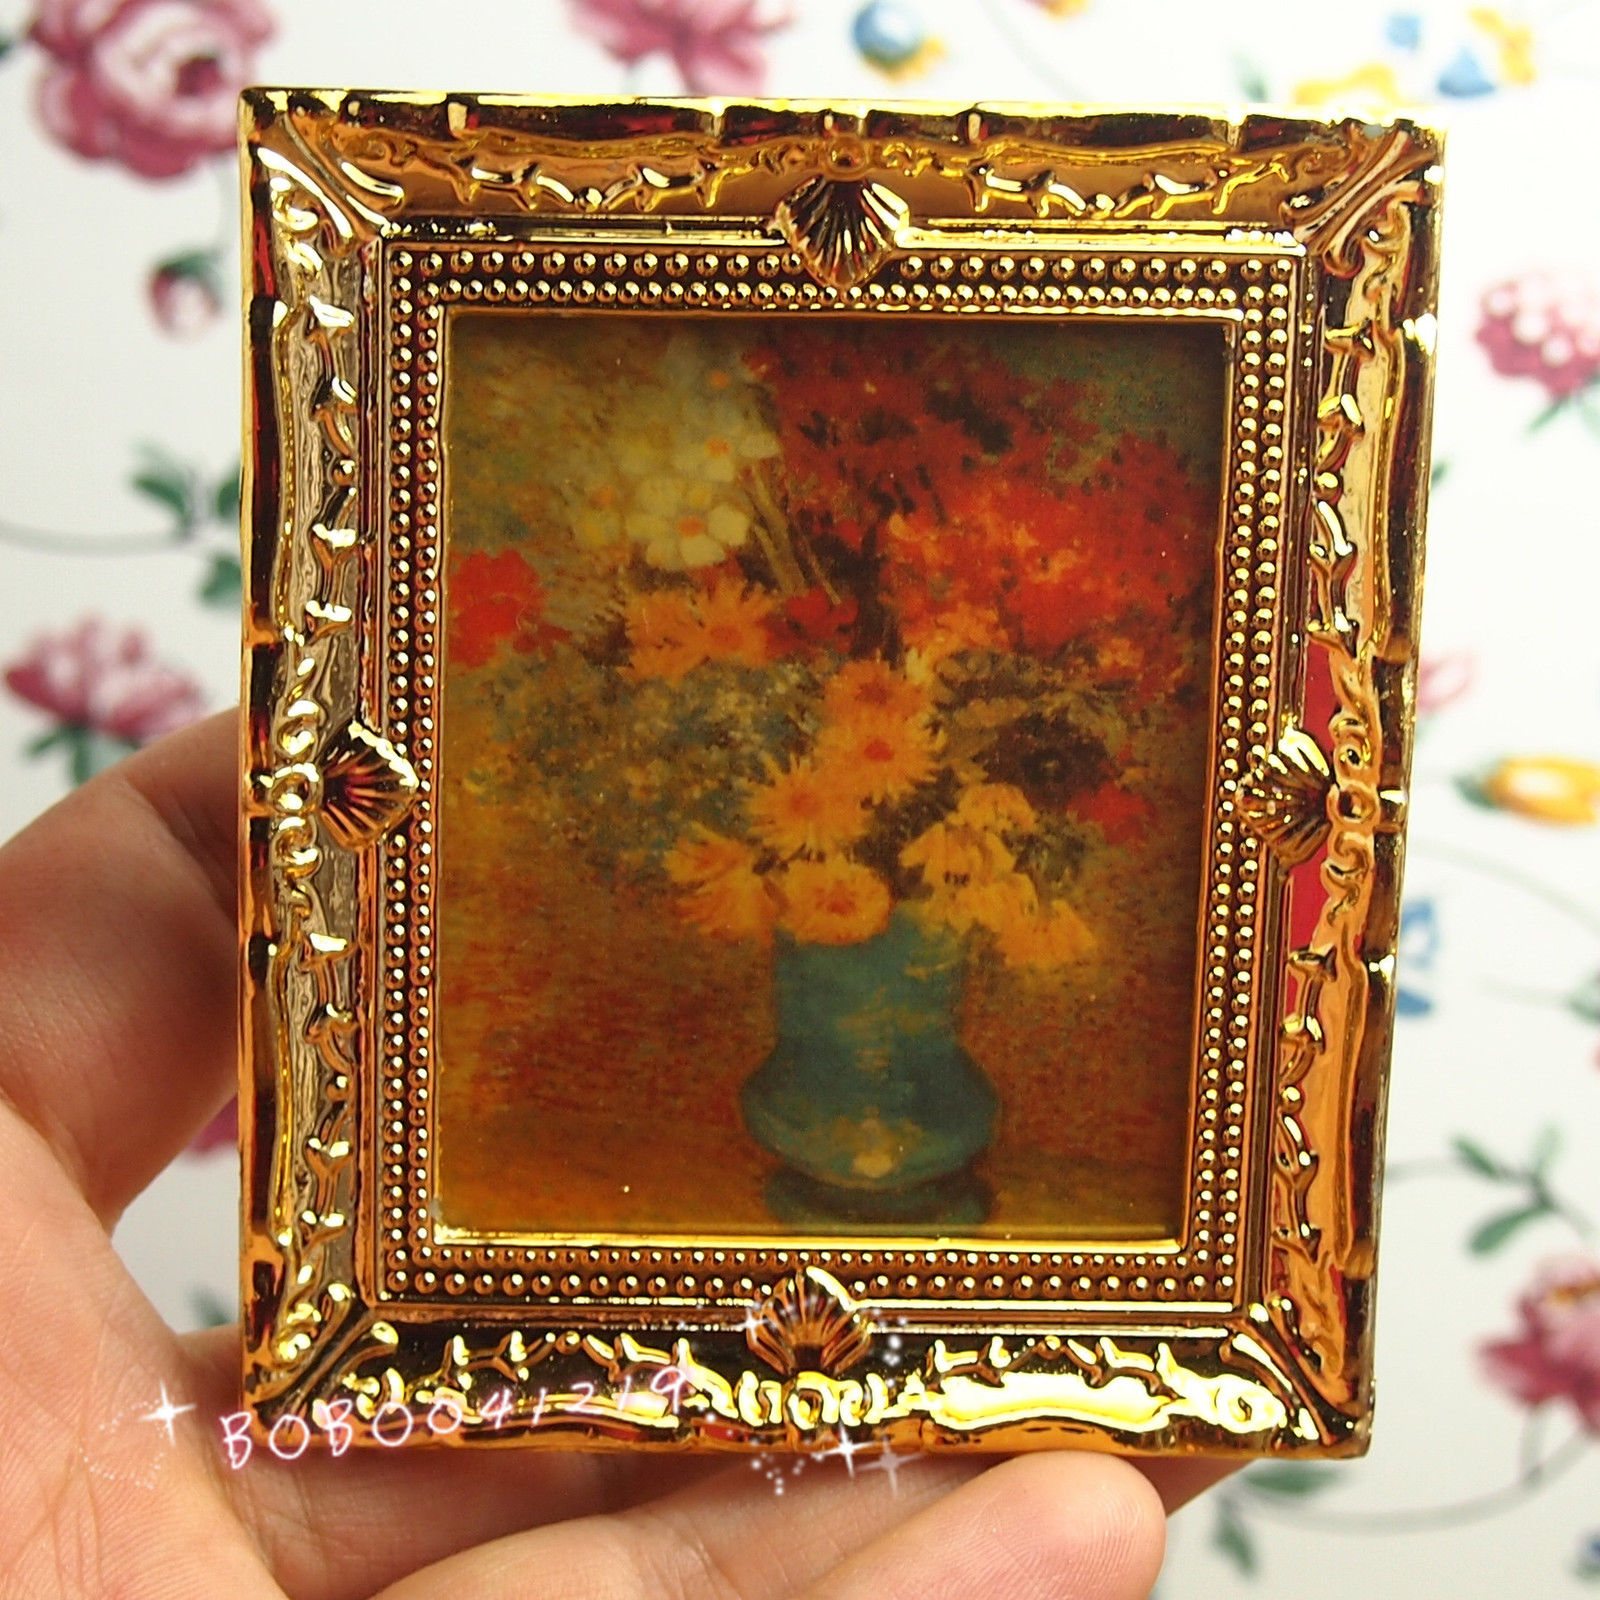 Dollhouse Miniature 1:12 Toy Frame Picture Tableau On Canvas Flower ...